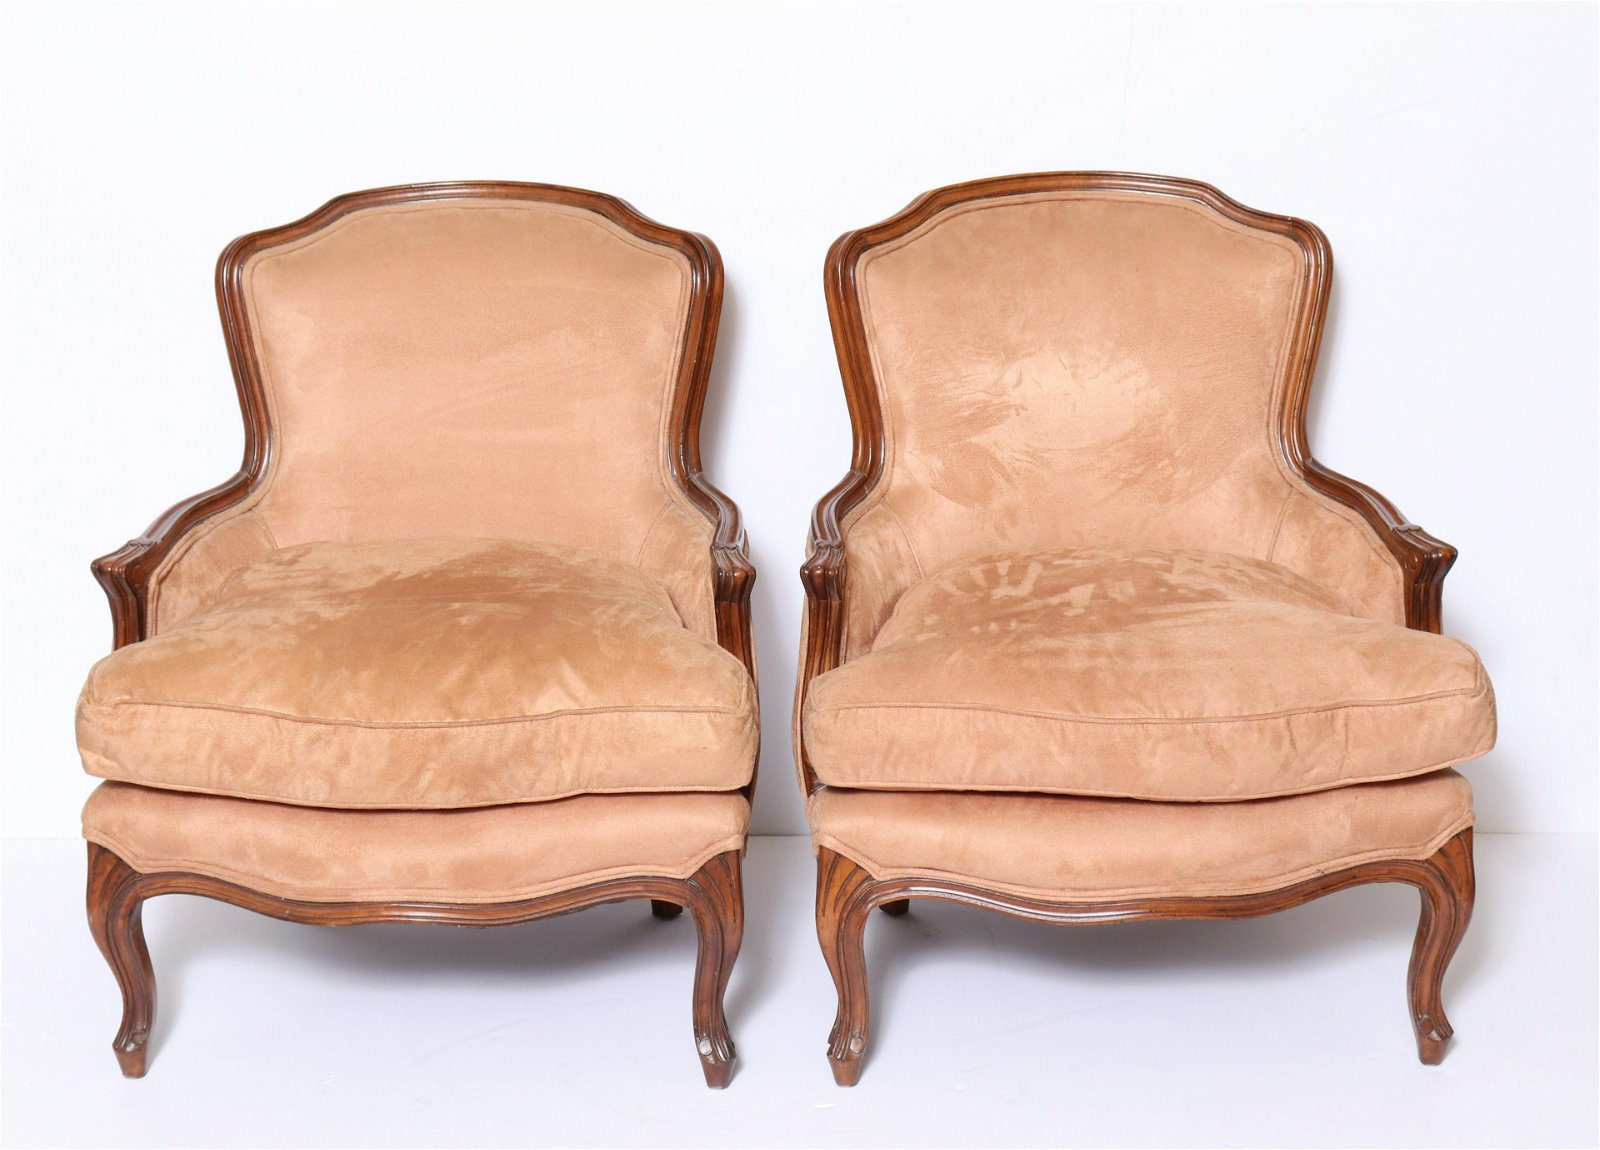 French Louis XV Manner Bergere Armchairs, Pair